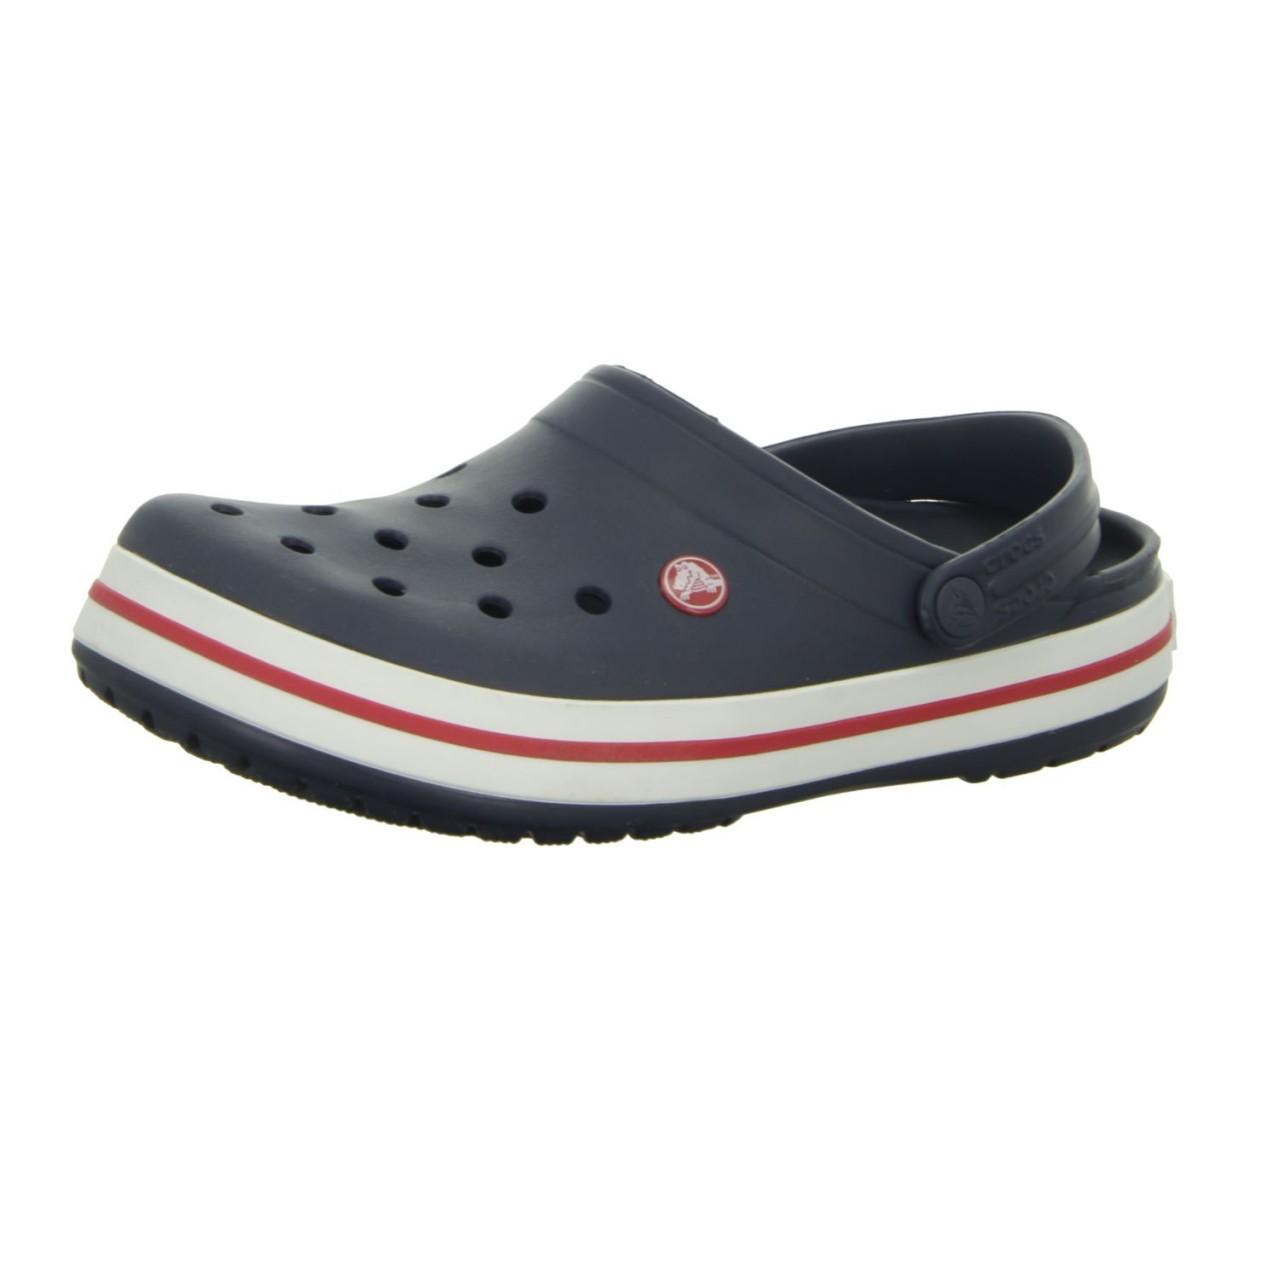 86a6b414817a Crocs™ Clogs Blue in Blue for Men - Lyst